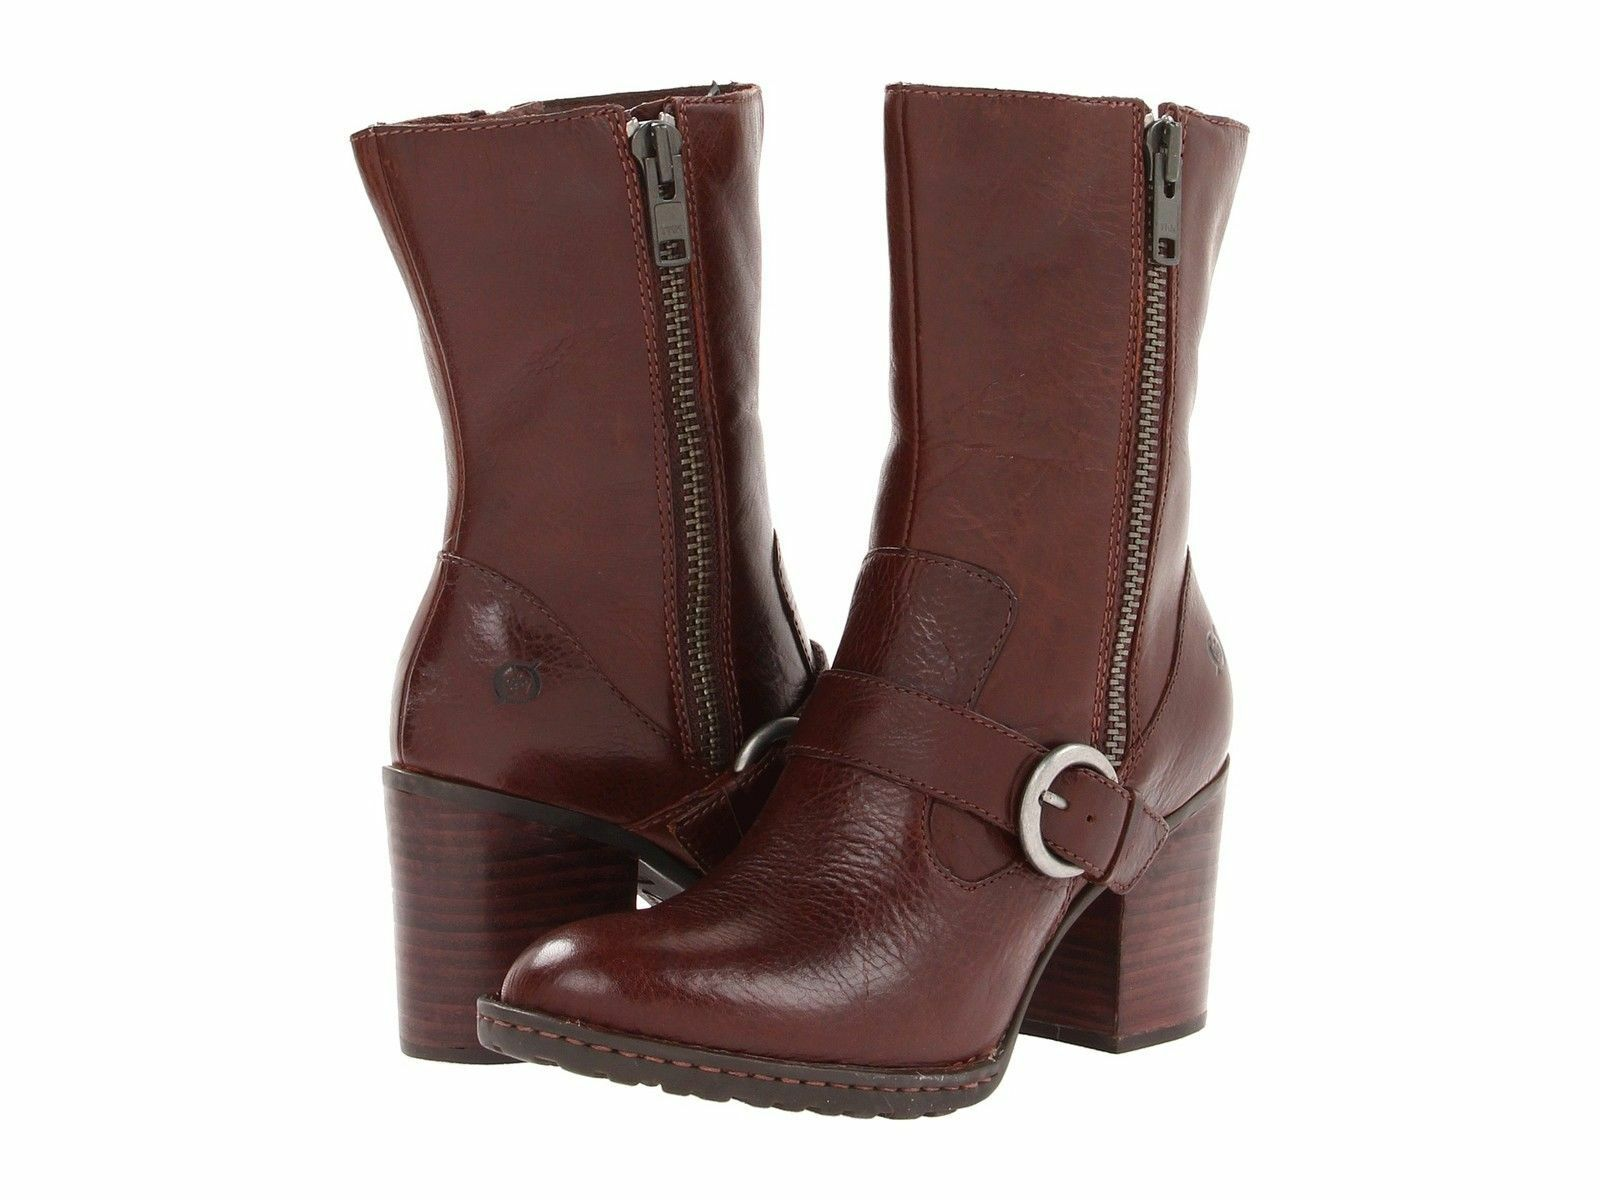 New Born Camryn Motorcycle Mid-Calf Brown Full Grain Leather Boots  Booties